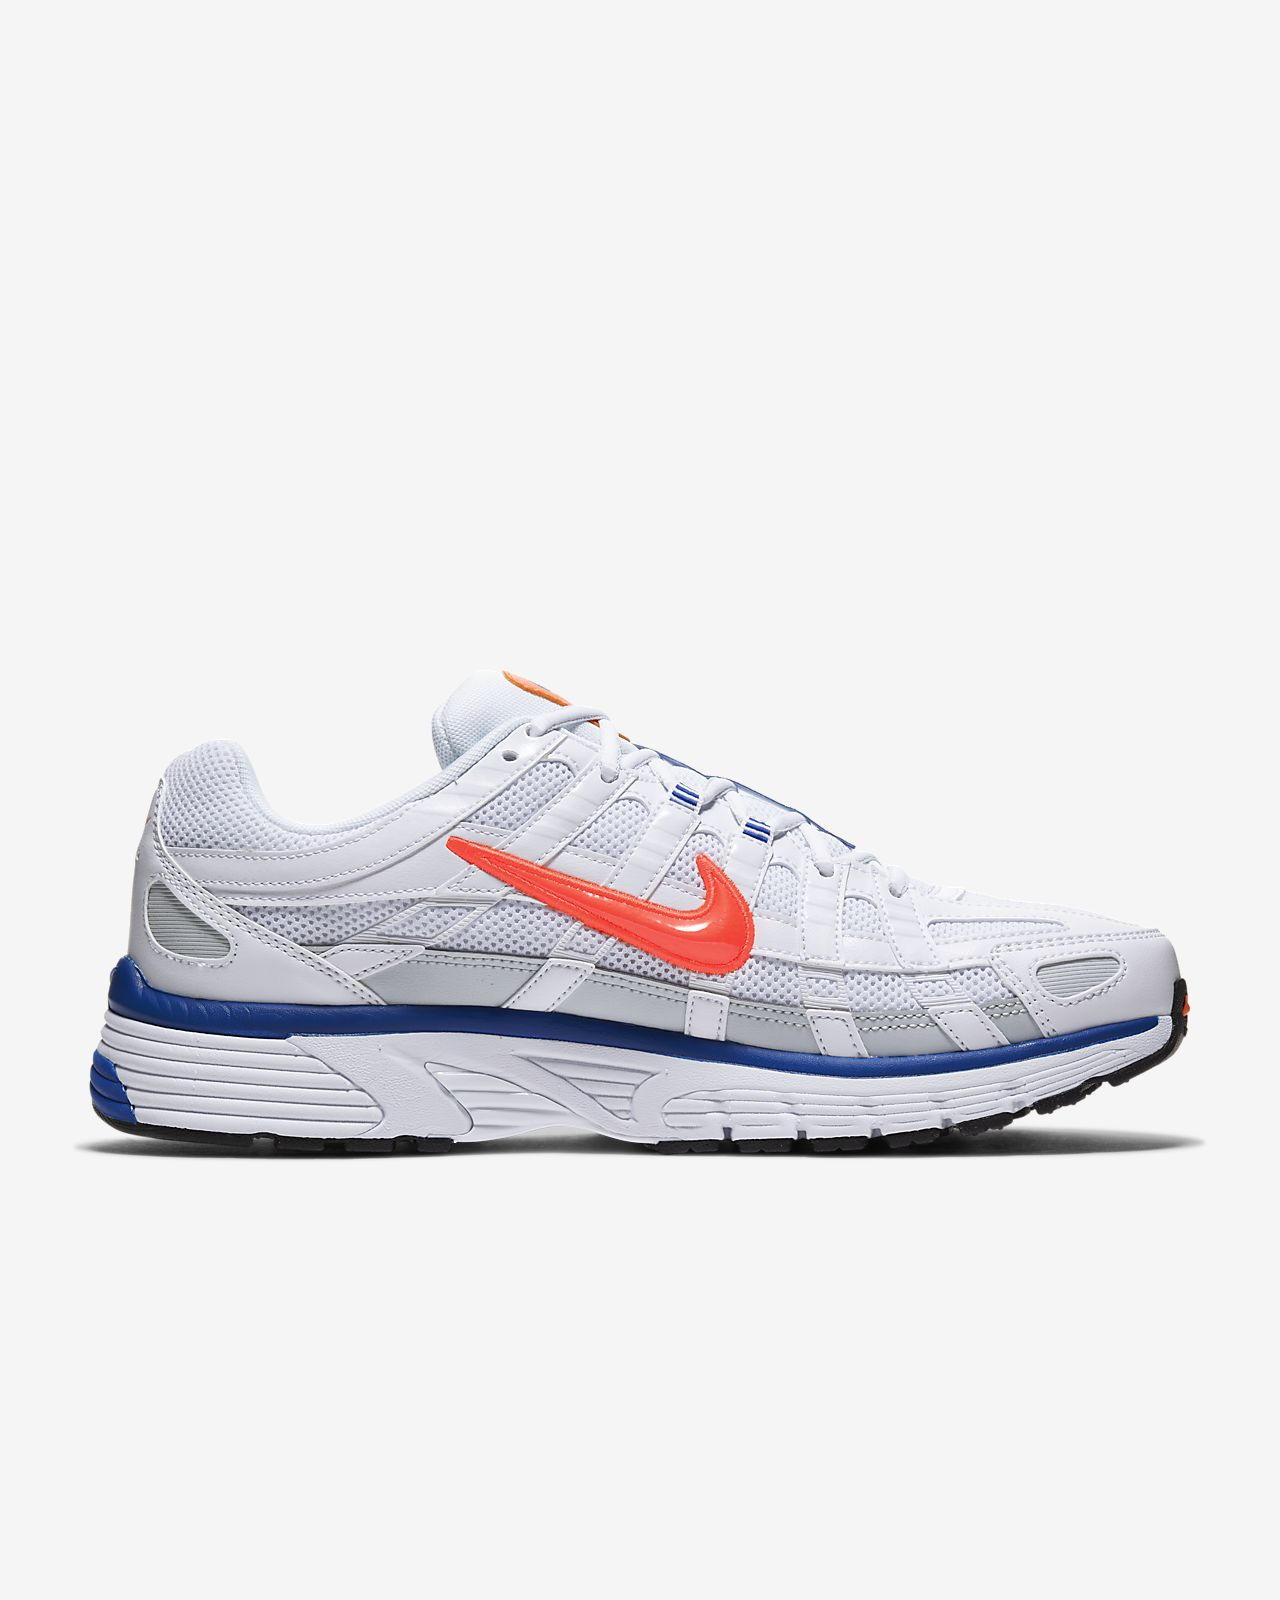 Chaussure Nike P 6000 pour Homme